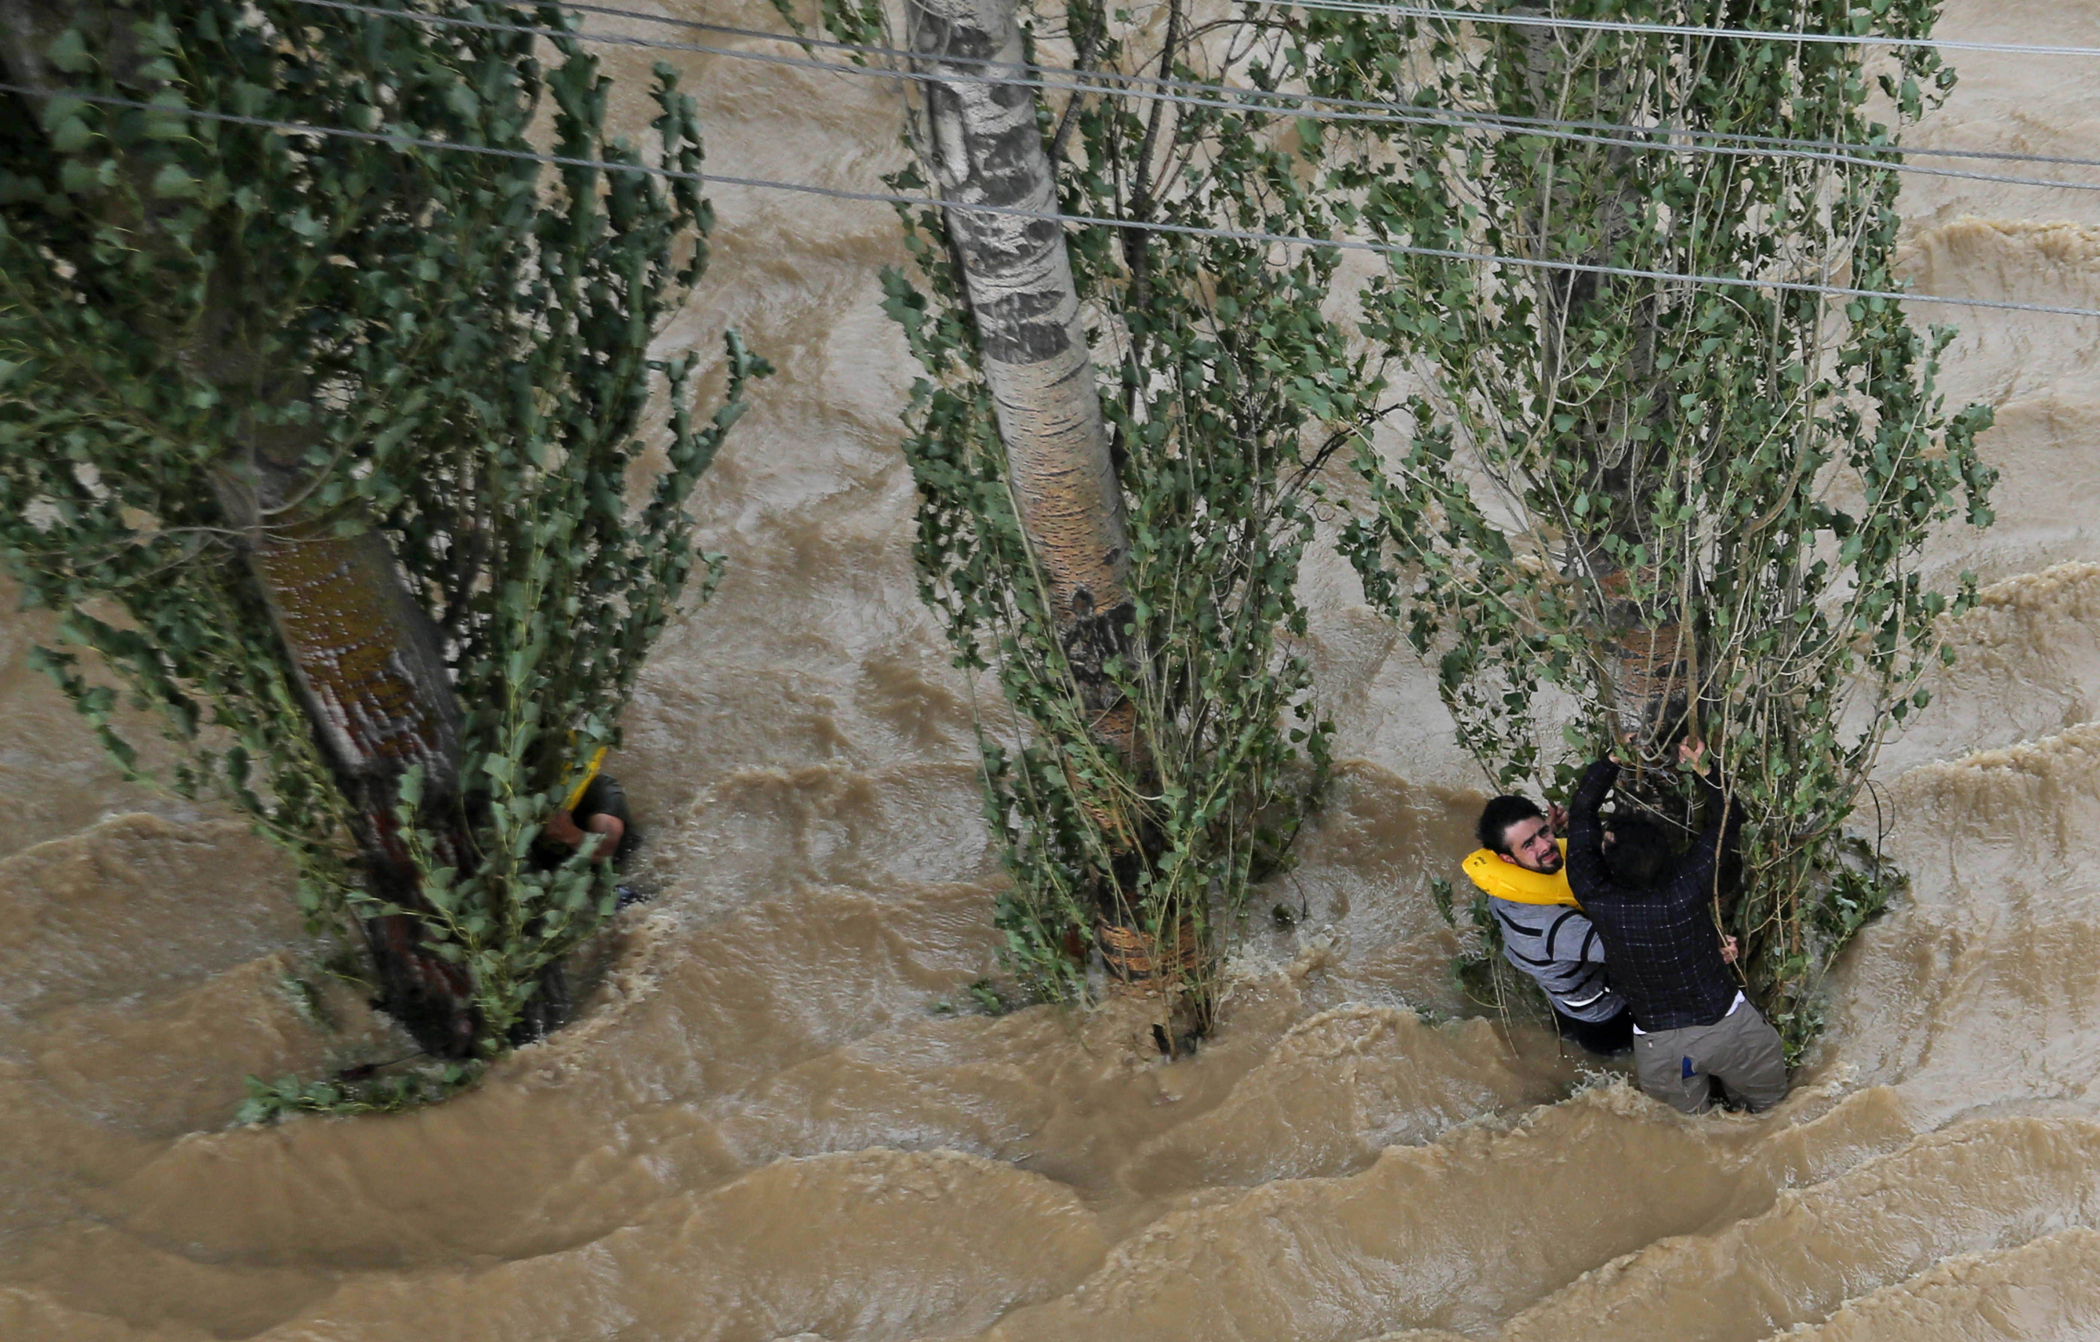 Kashmiris hang on to a tree to prevent being swept away by floodwaters in Srinagar, India, Sept. 9, 2014.